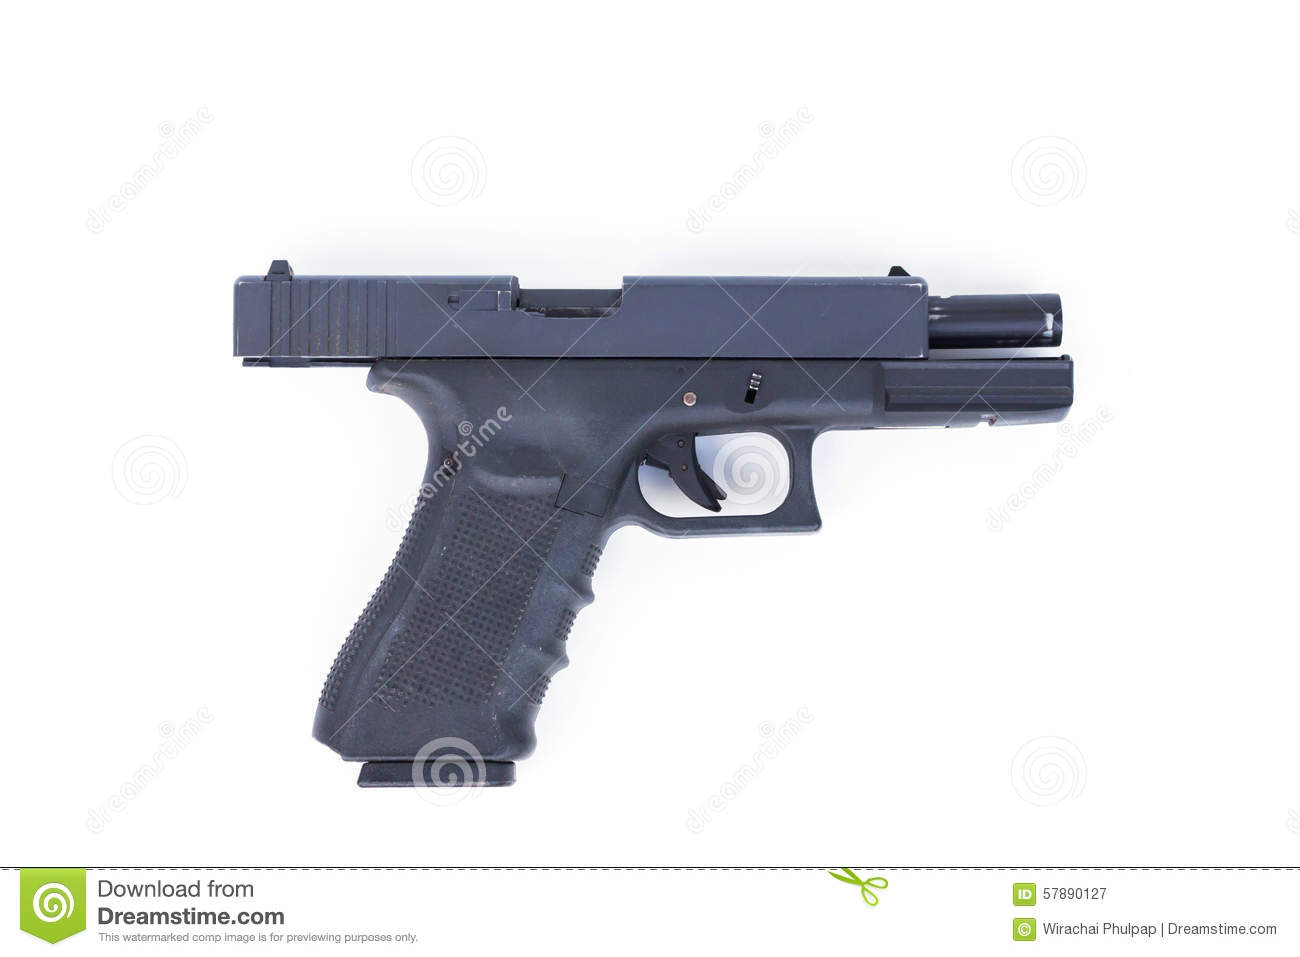 gun white background - photo #19